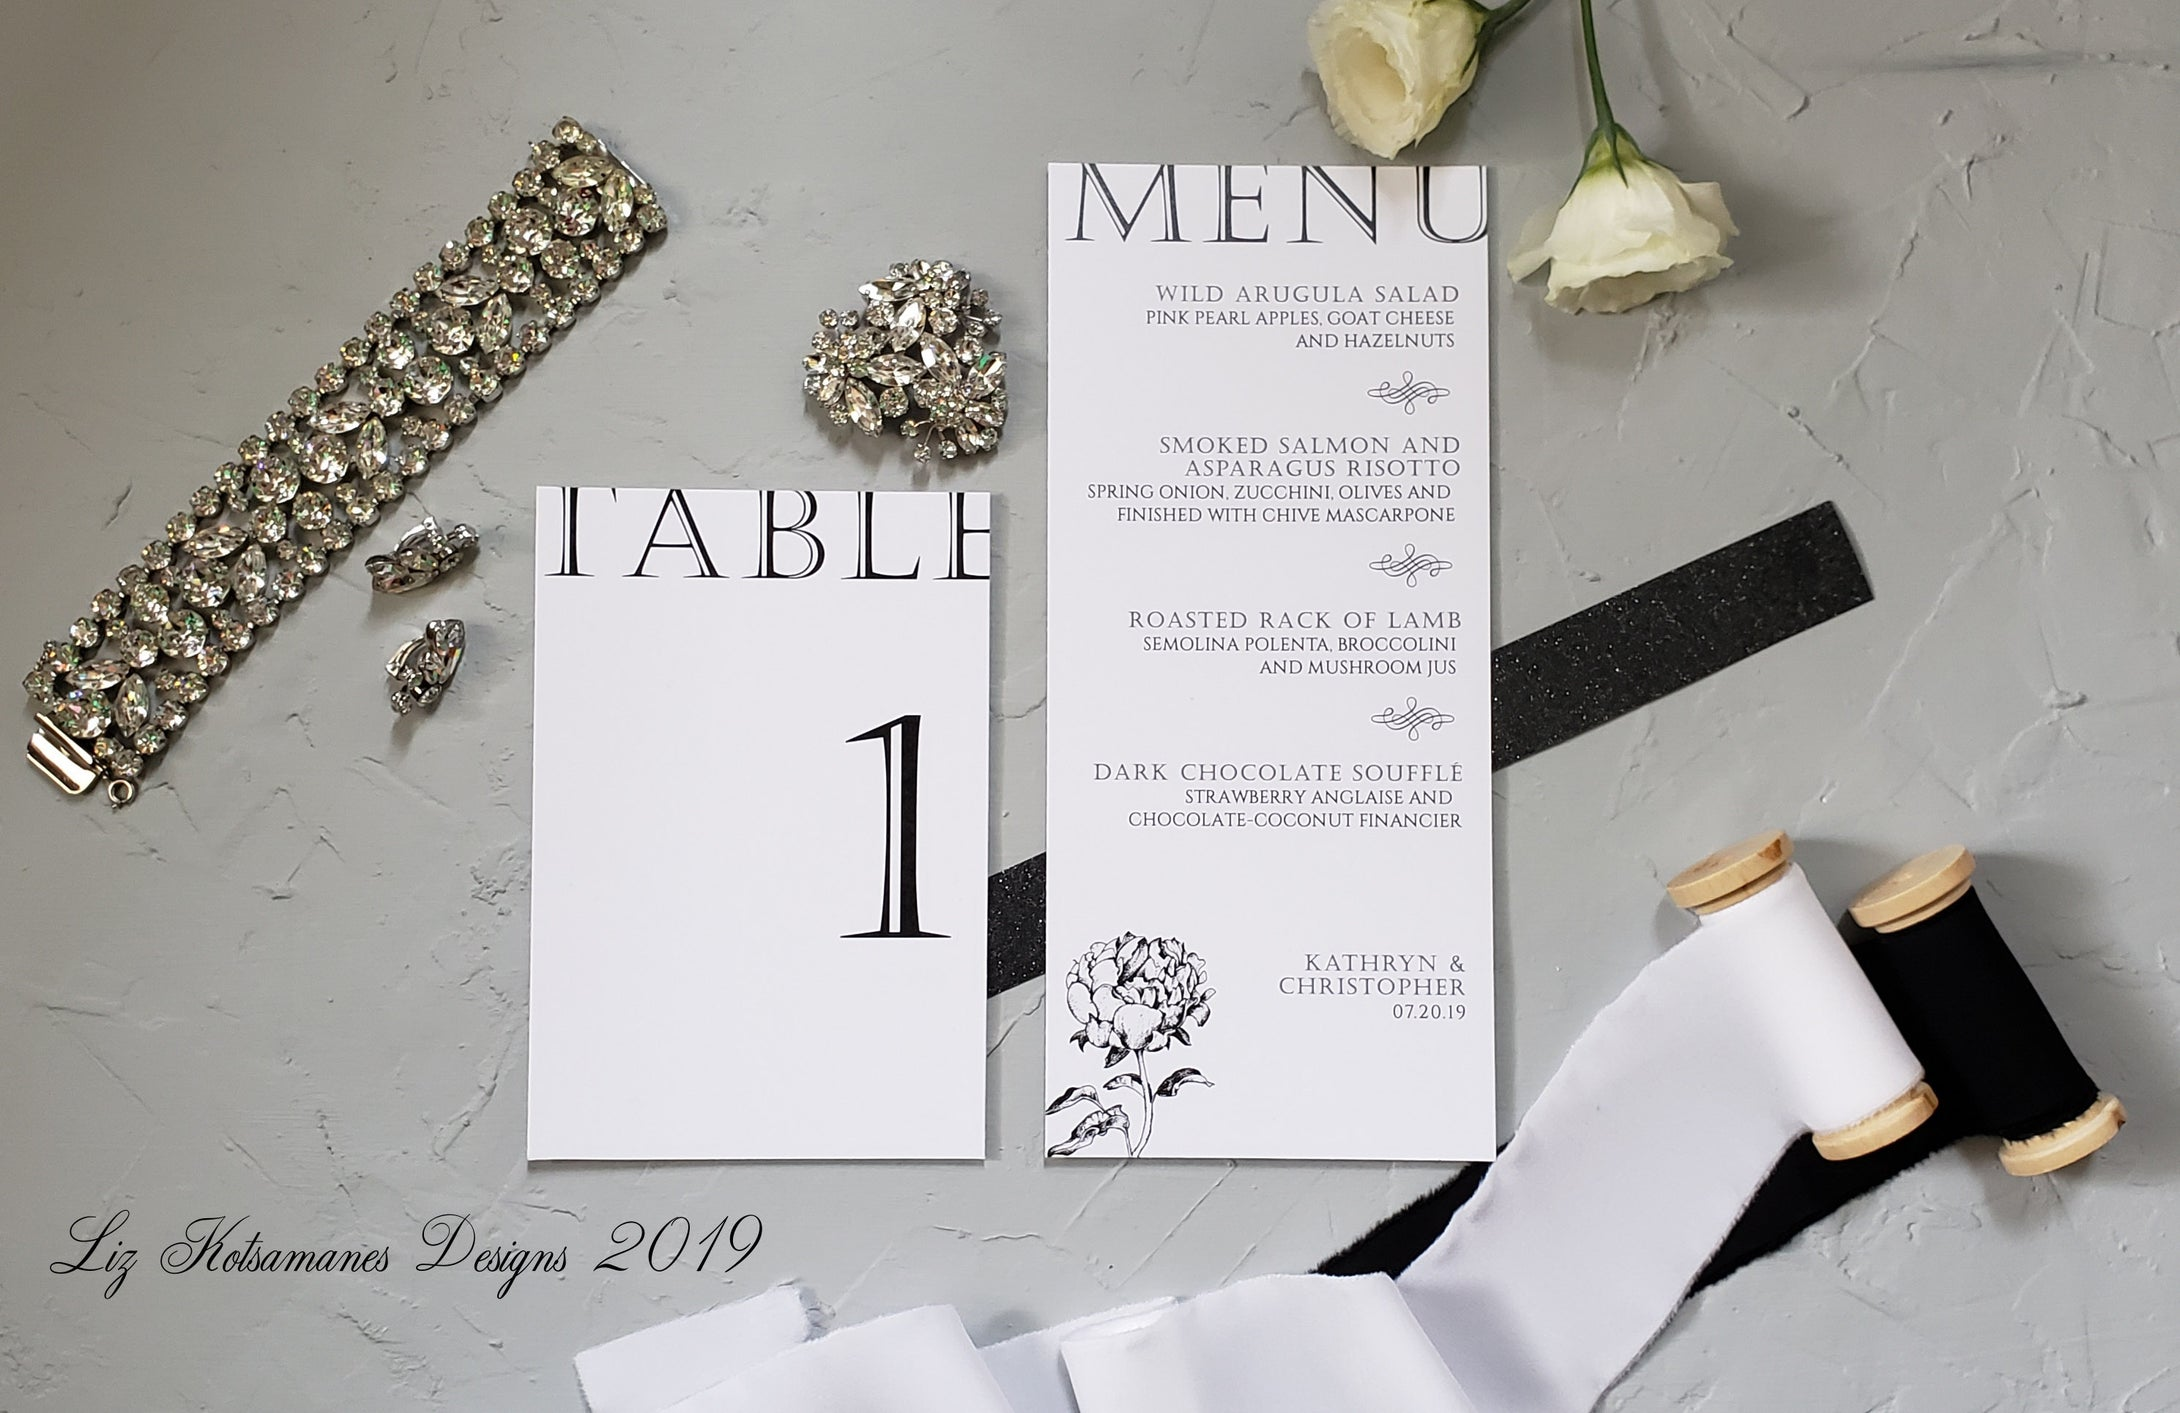 Elegant black and white peony minimalist modern wedding invitation table numbers and menus created by Liz Kotsamanes Designs, Cambridge, Ontario Canada, elegant luxury wedding stationery